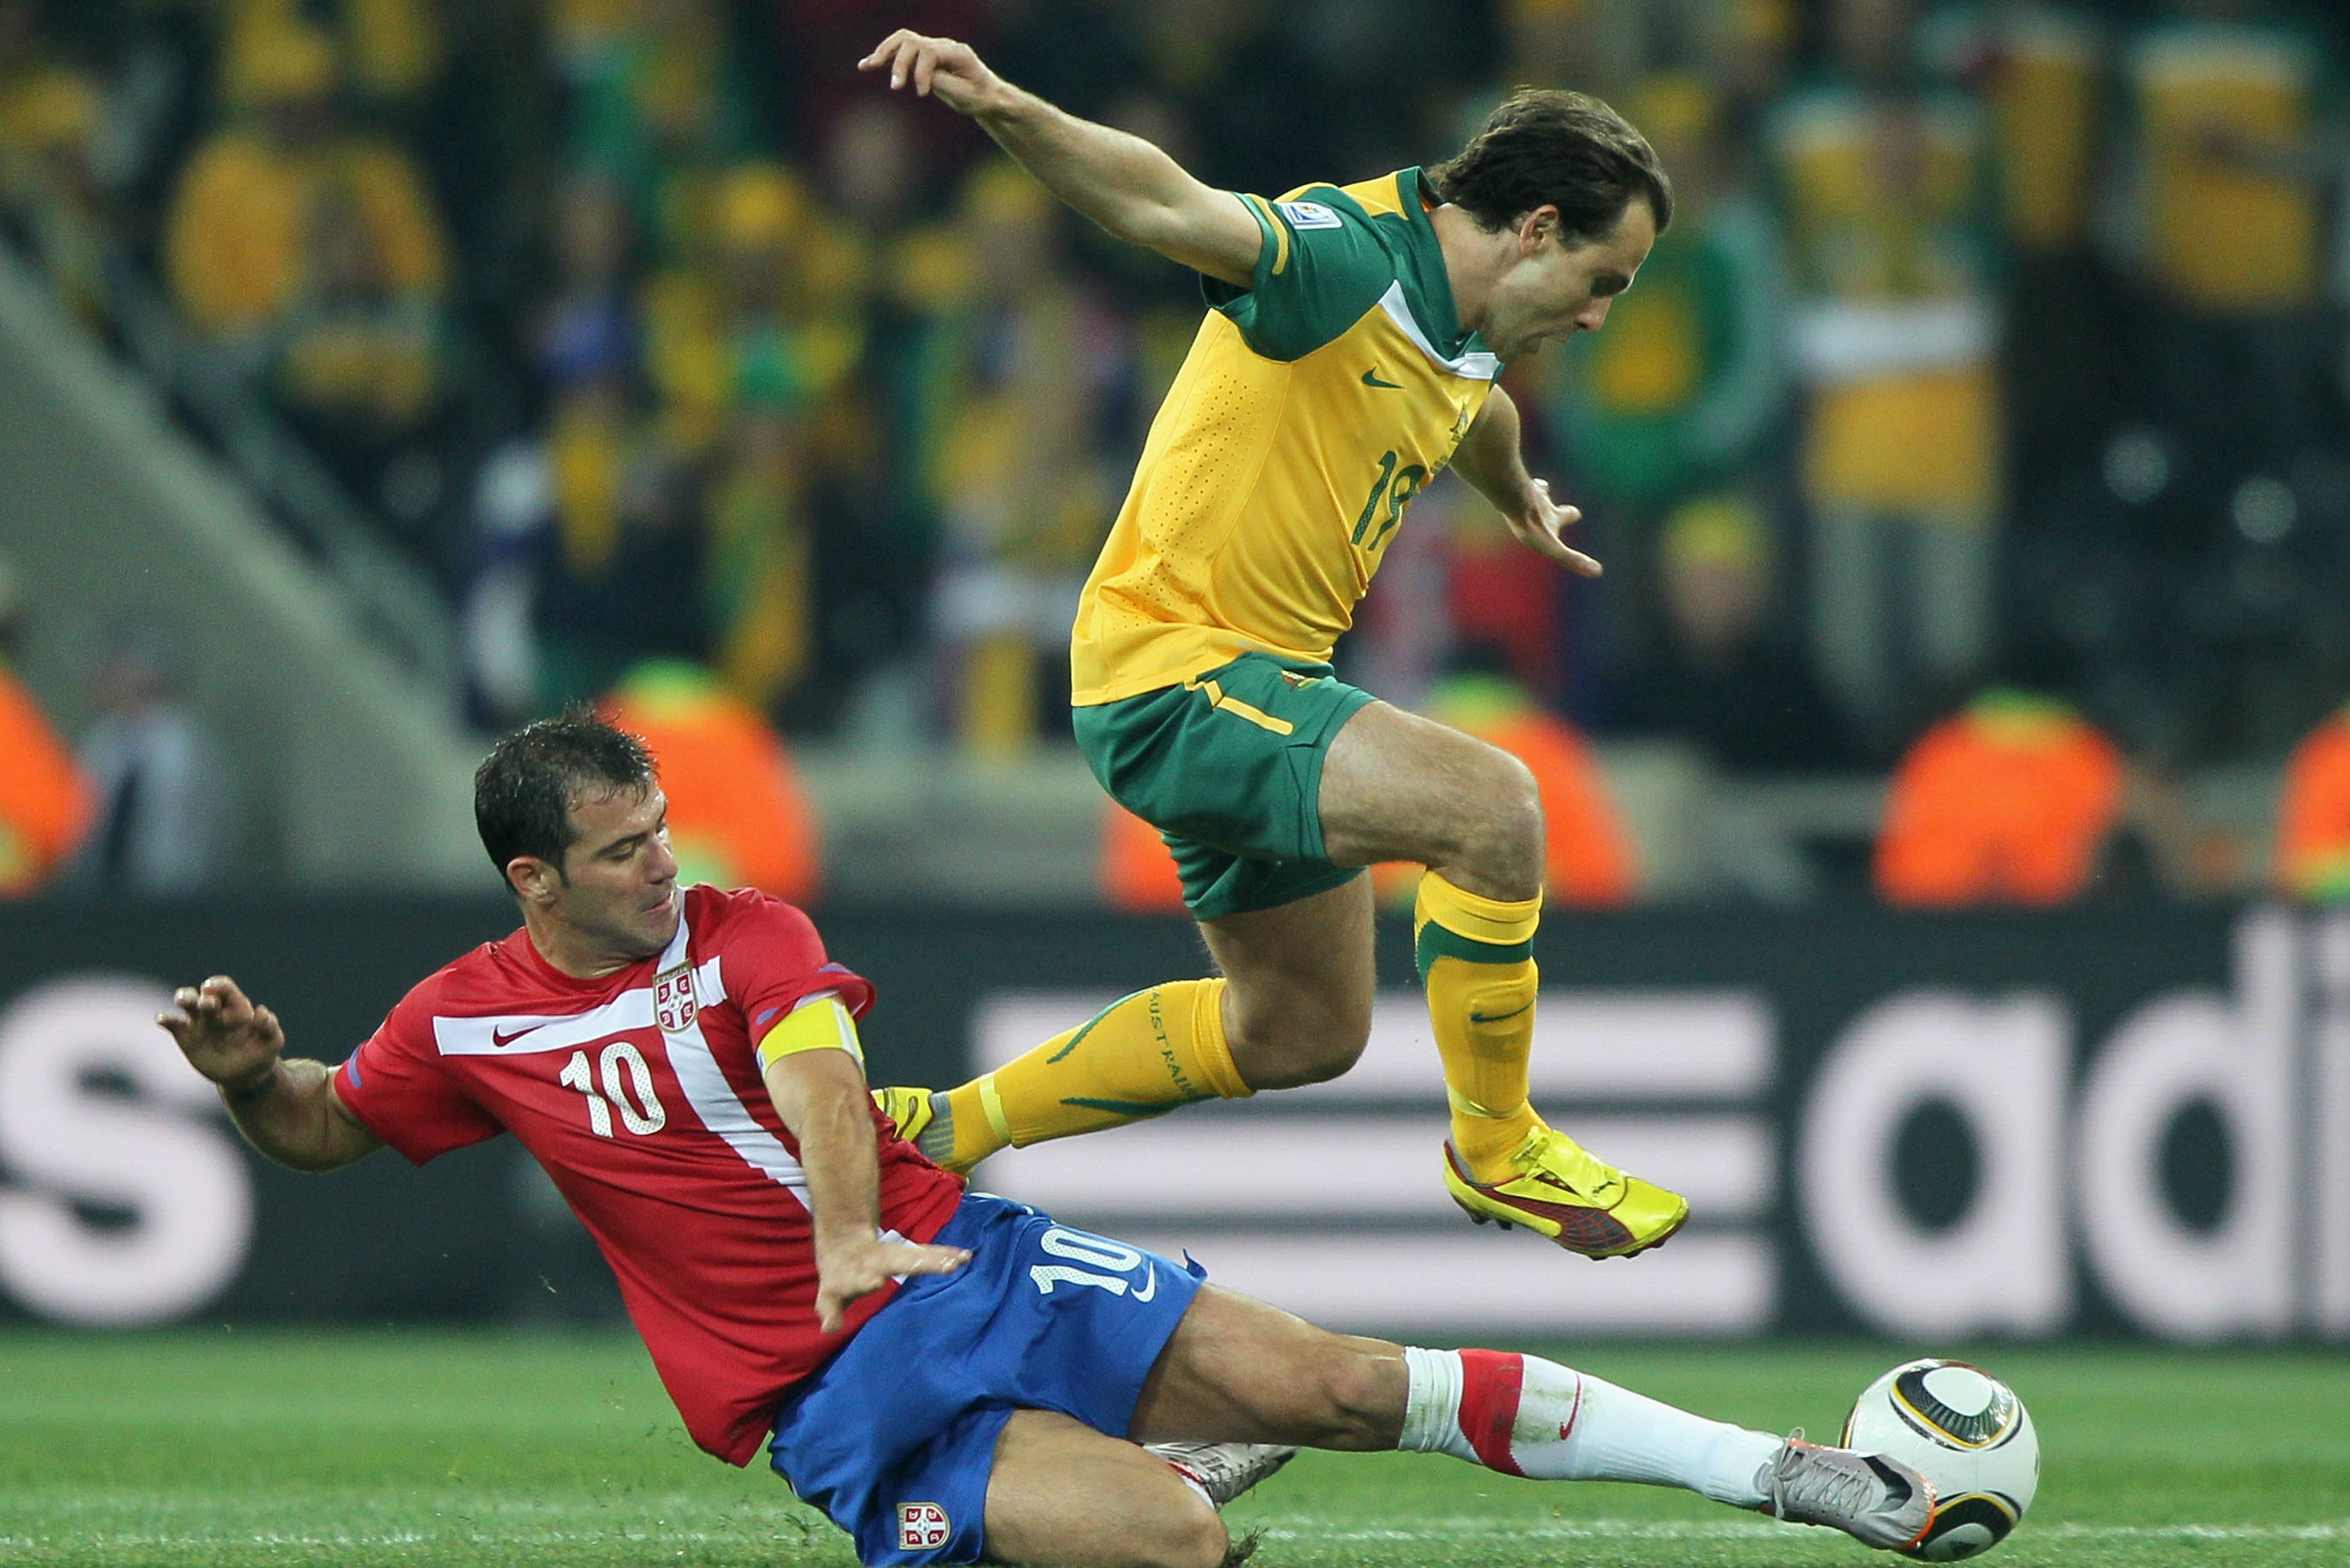 Richard Garcia evades the challenge of a Serbian player at the 2010 World Cup.